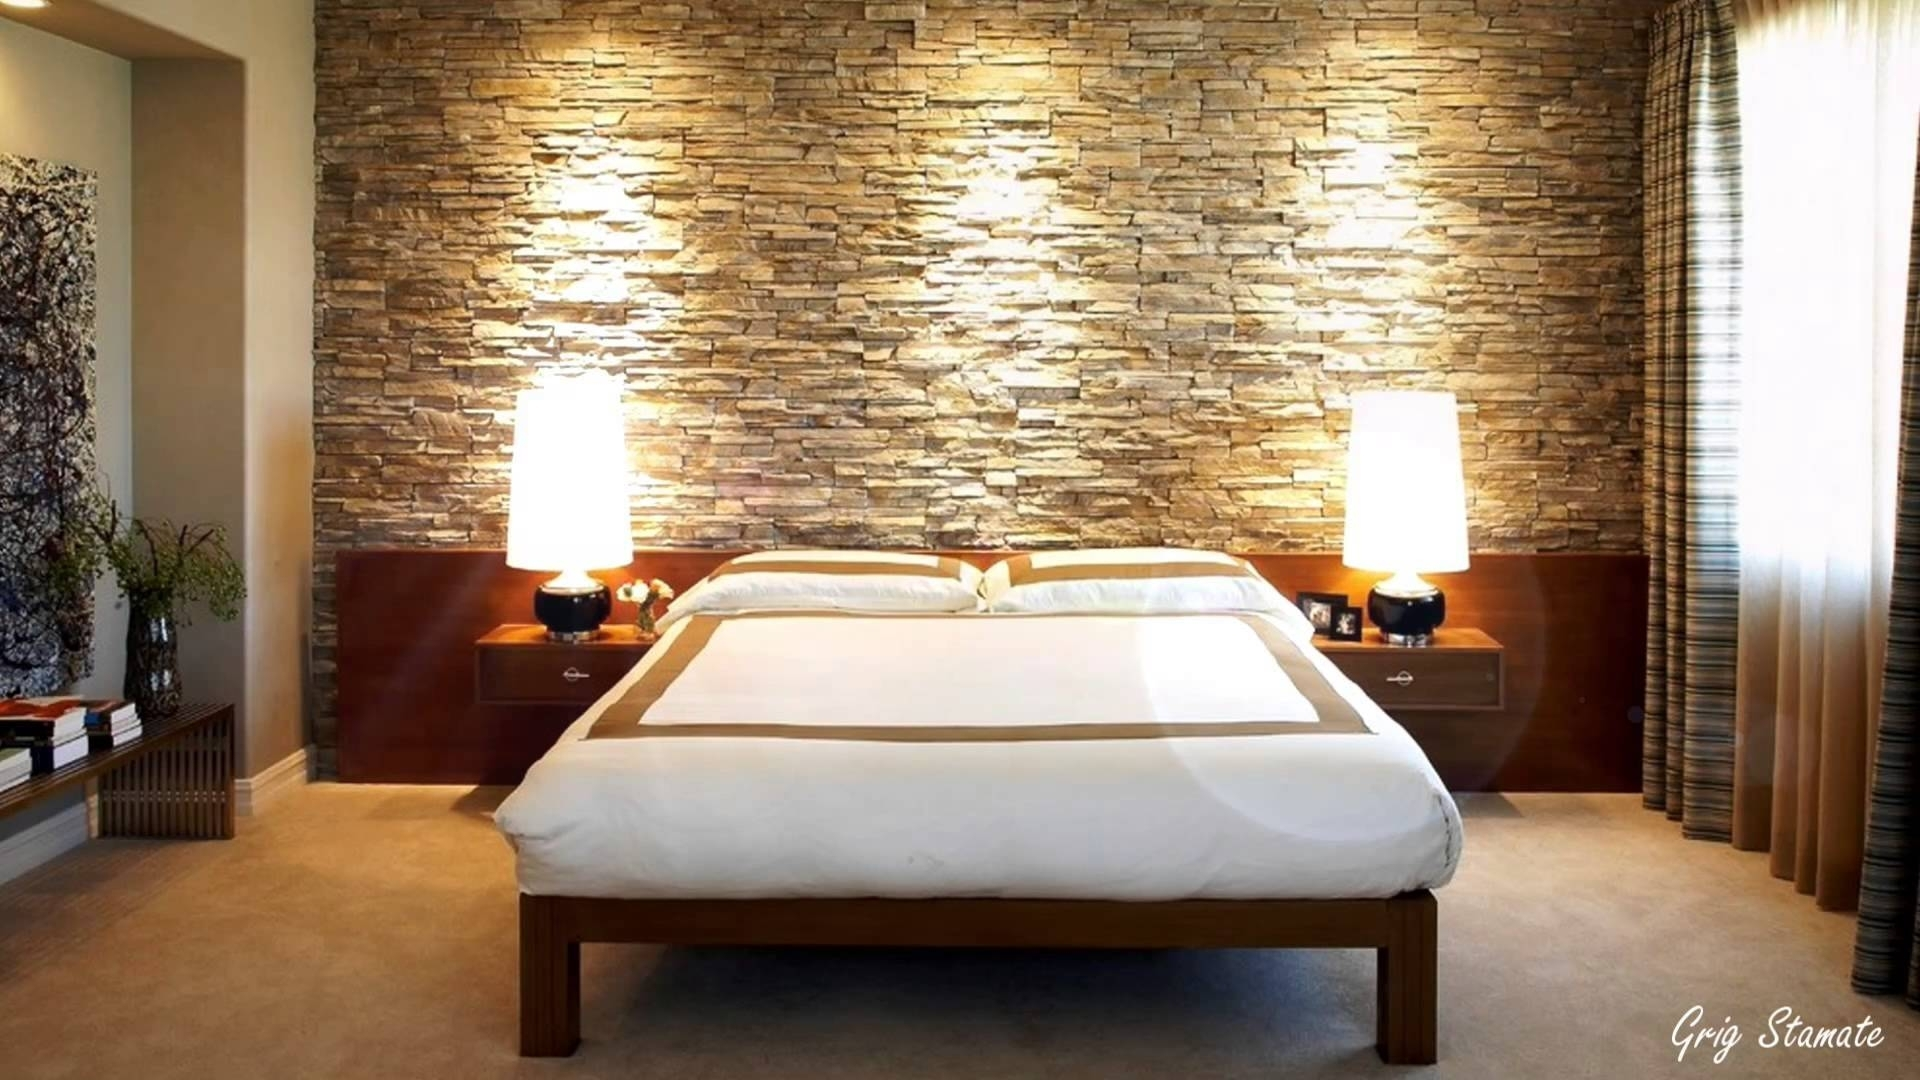 Bedroom Ideas : Master Bedroom Wall Decor Best Of Master Bedroom Within Recent Wall Accents Behind Bed (View 4 of 15)